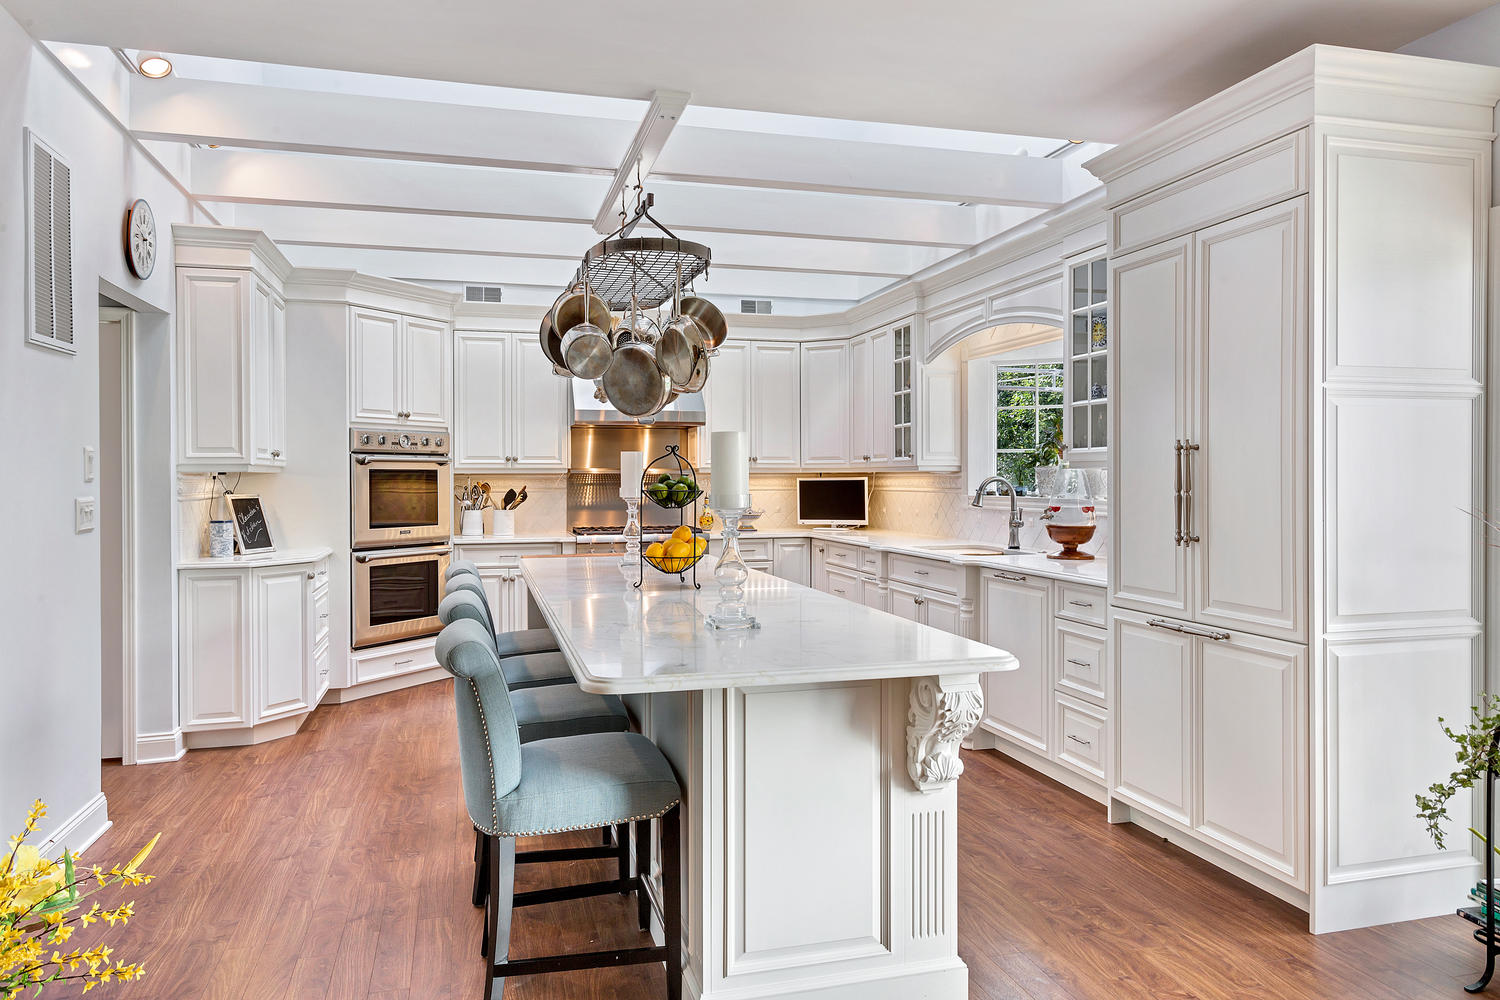 Kitchen Luxury White Luxury White Kitchen Avon Njdesign Line Kitchens